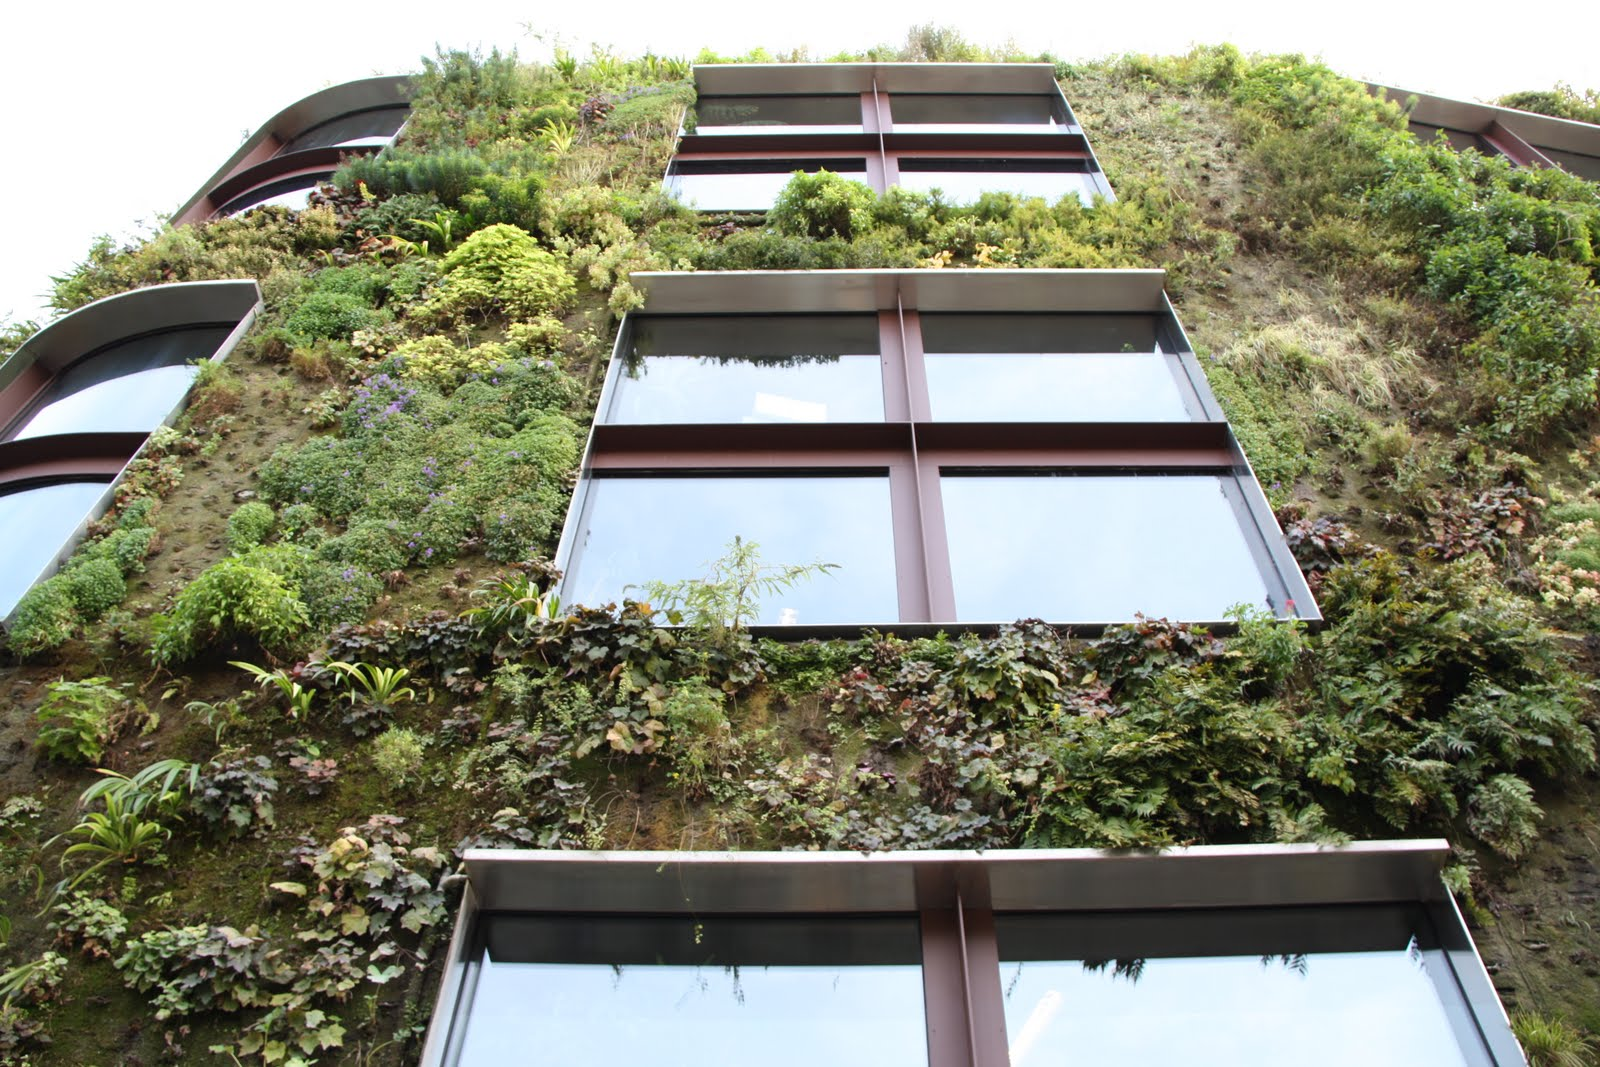 Growing Walls Vertical Gardens The Work Patrick Blanc